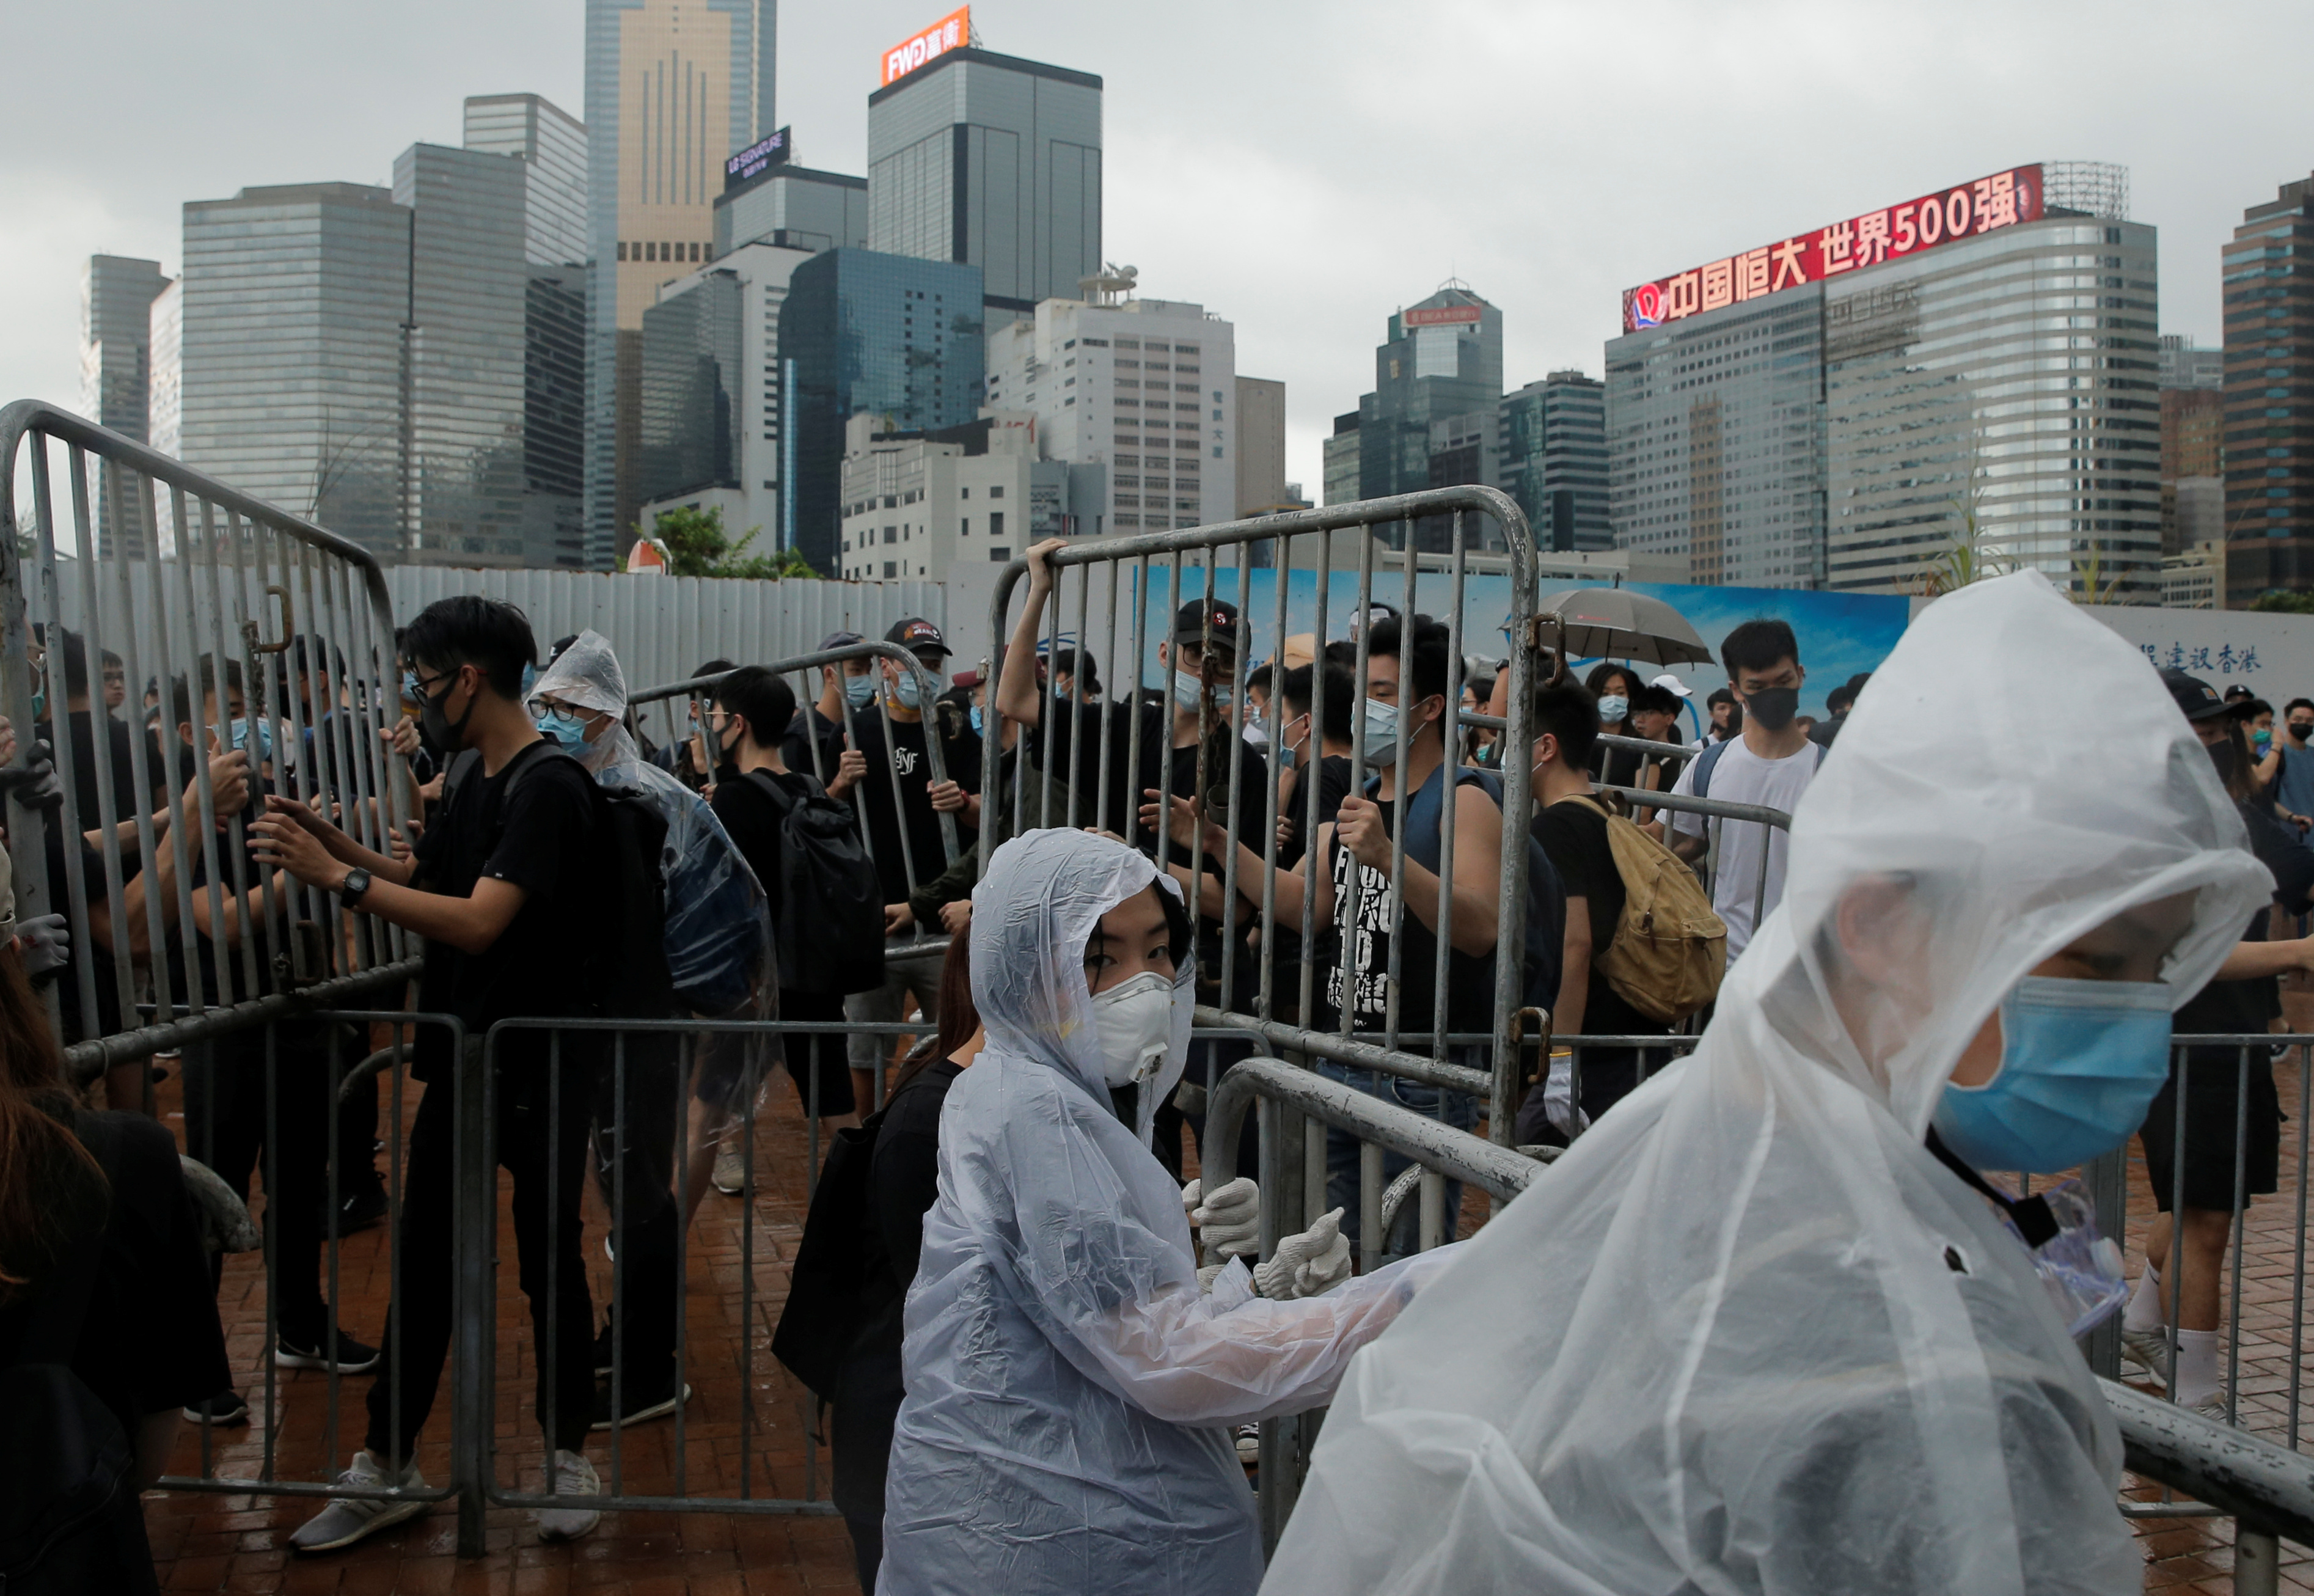 Demonstrators remove metal barricades during protests against a proposed extradition bill in Hong Kong, China June 12, 2019. REUTERS/Thomas Peter